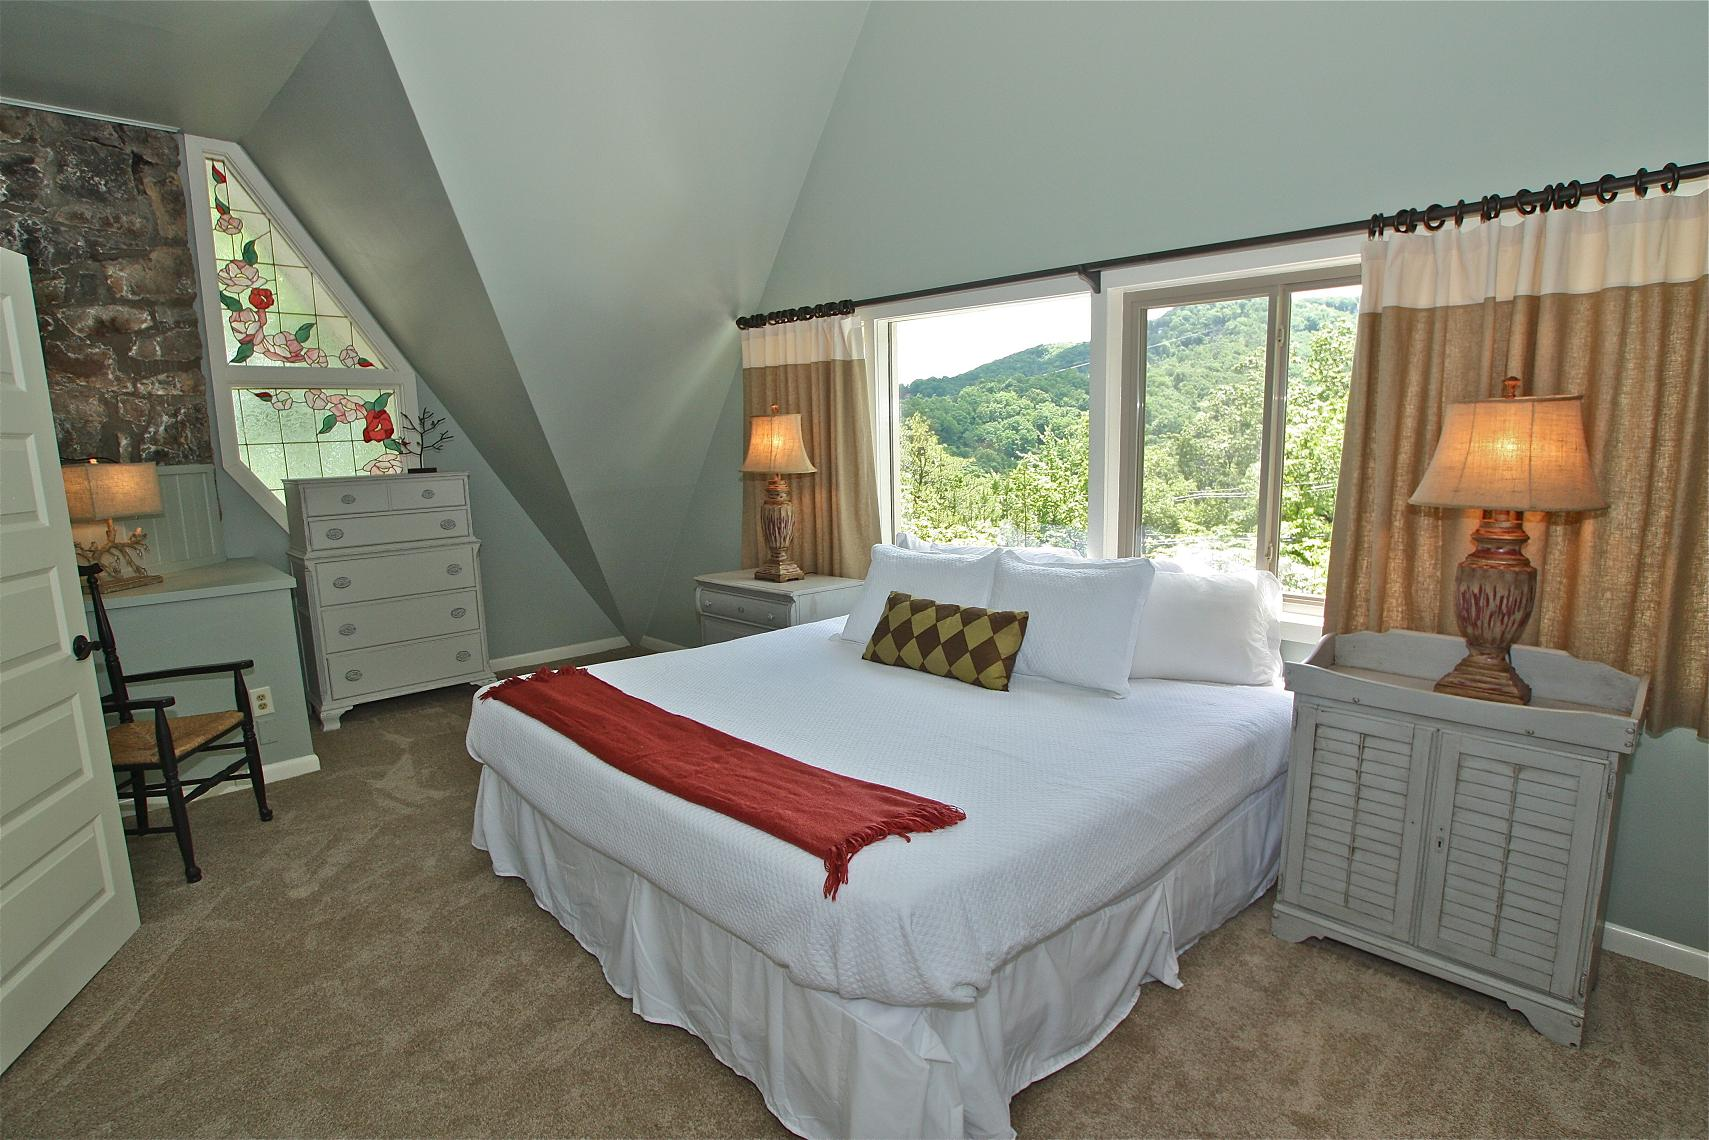 Suite Two A 2 Bedroom Cabin In Gatlinburg Tennessee Mountain Laurel Chale